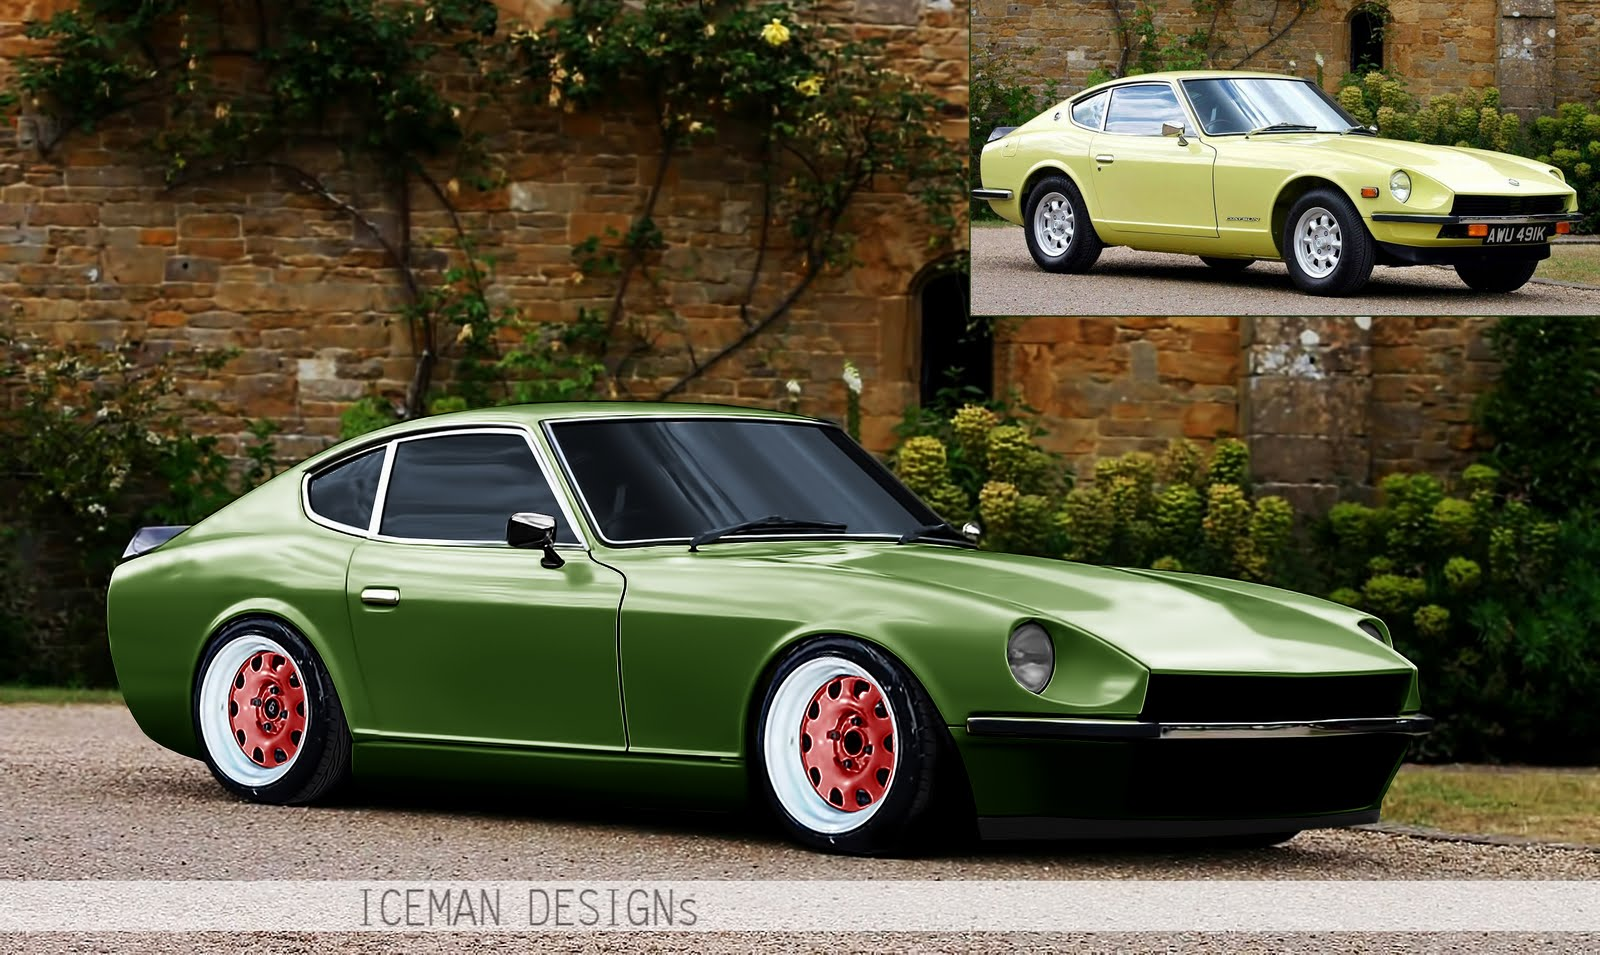 icemangraphics nissan 240z by iceman. Black Bedroom Furniture Sets. Home Design Ideas